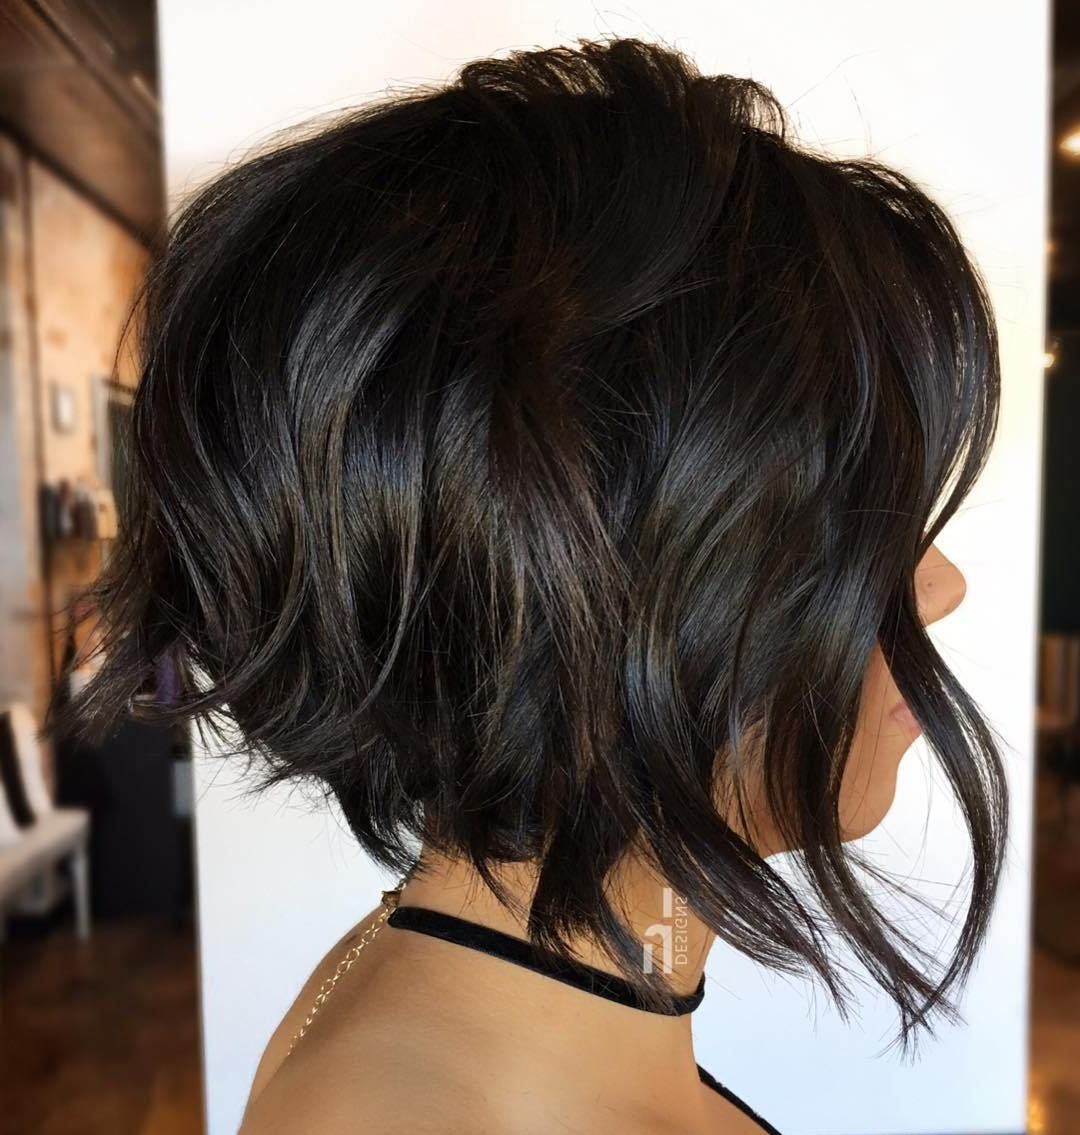 70 Best A Line Bob Hairstyles Screaming With Class And Style With Regard To Short Sliced Inverted Bob Hairstyles (View 10 of 20)